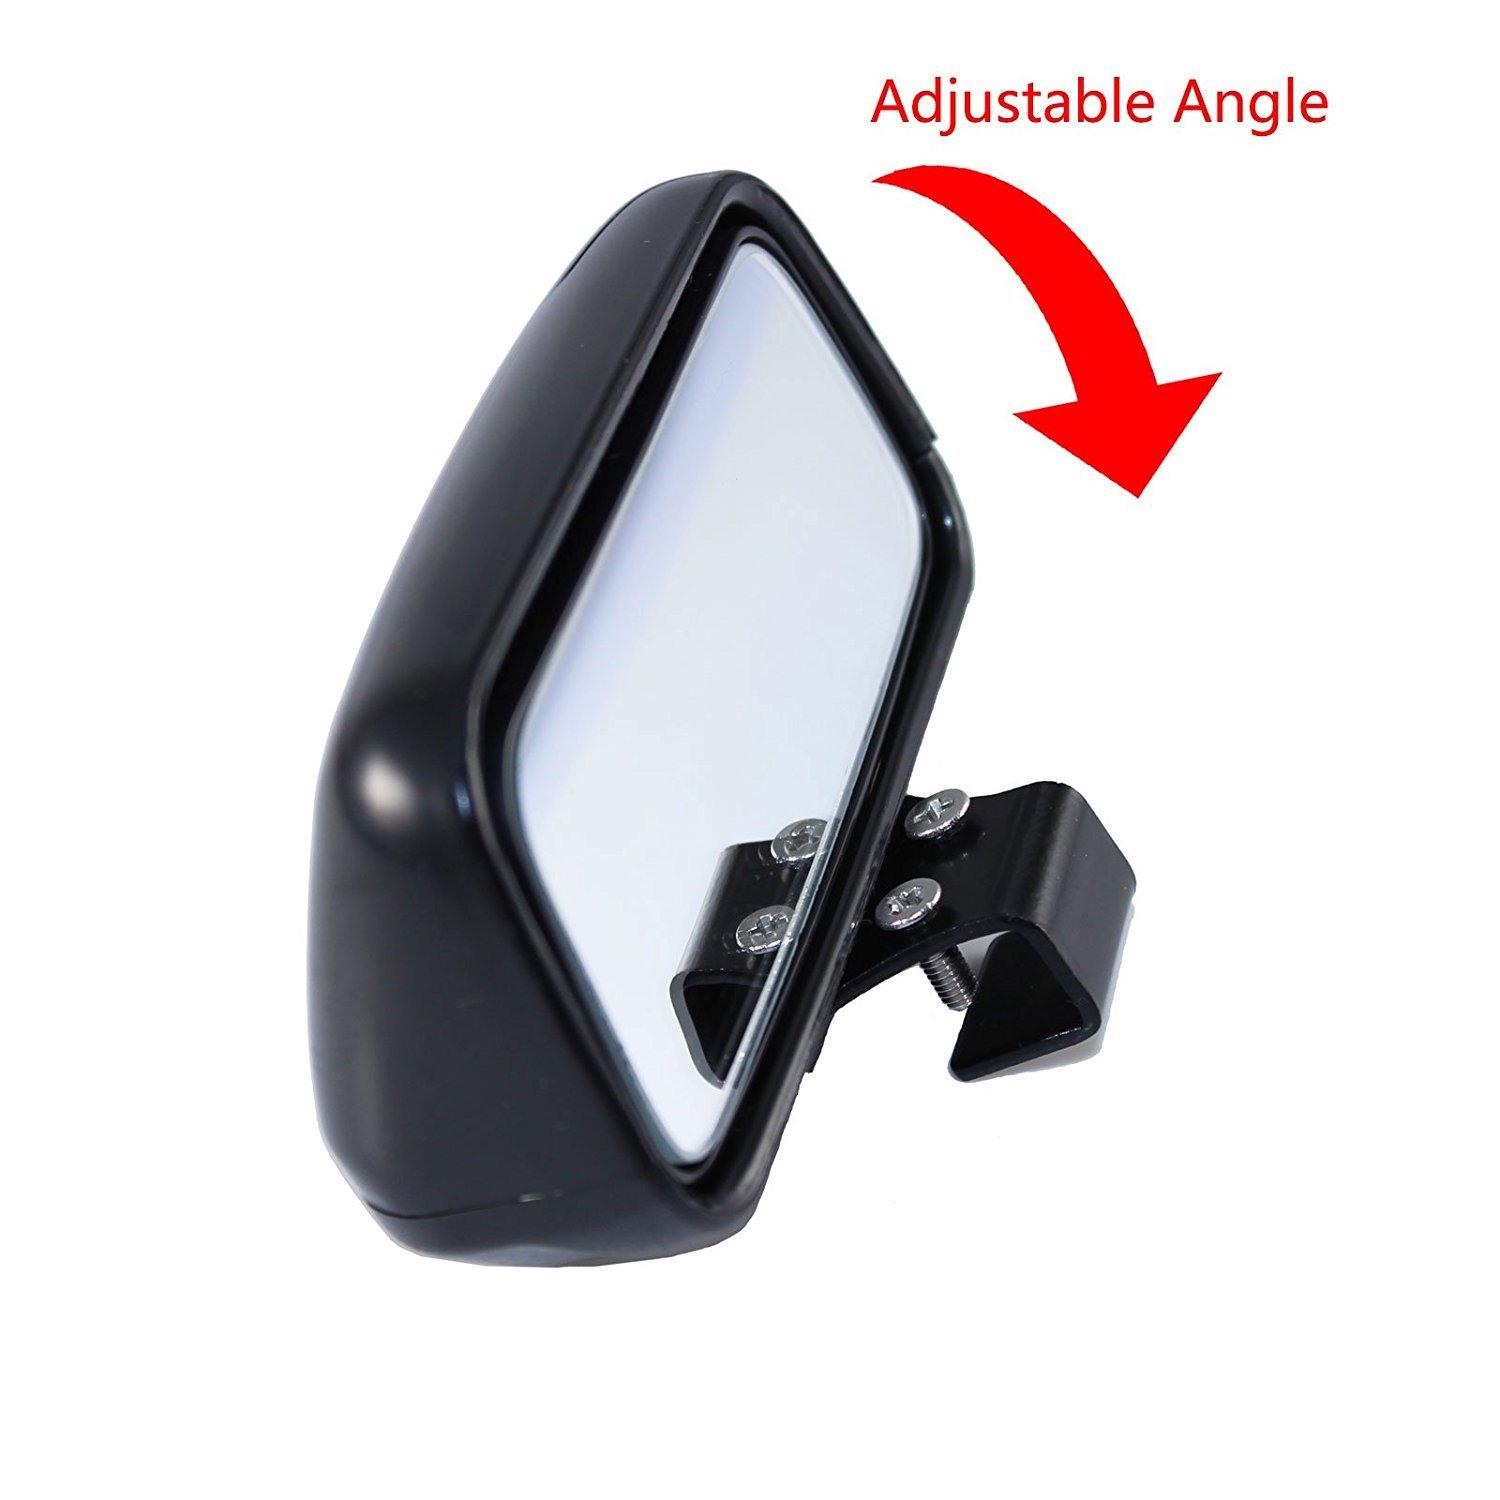 2 Pcs Convex Clip On Half Oval Rear View Conter Blind Spot Angle Auxiliary Mirrors For Car Truck SUVs Motorcycle Blind Spot Mirror